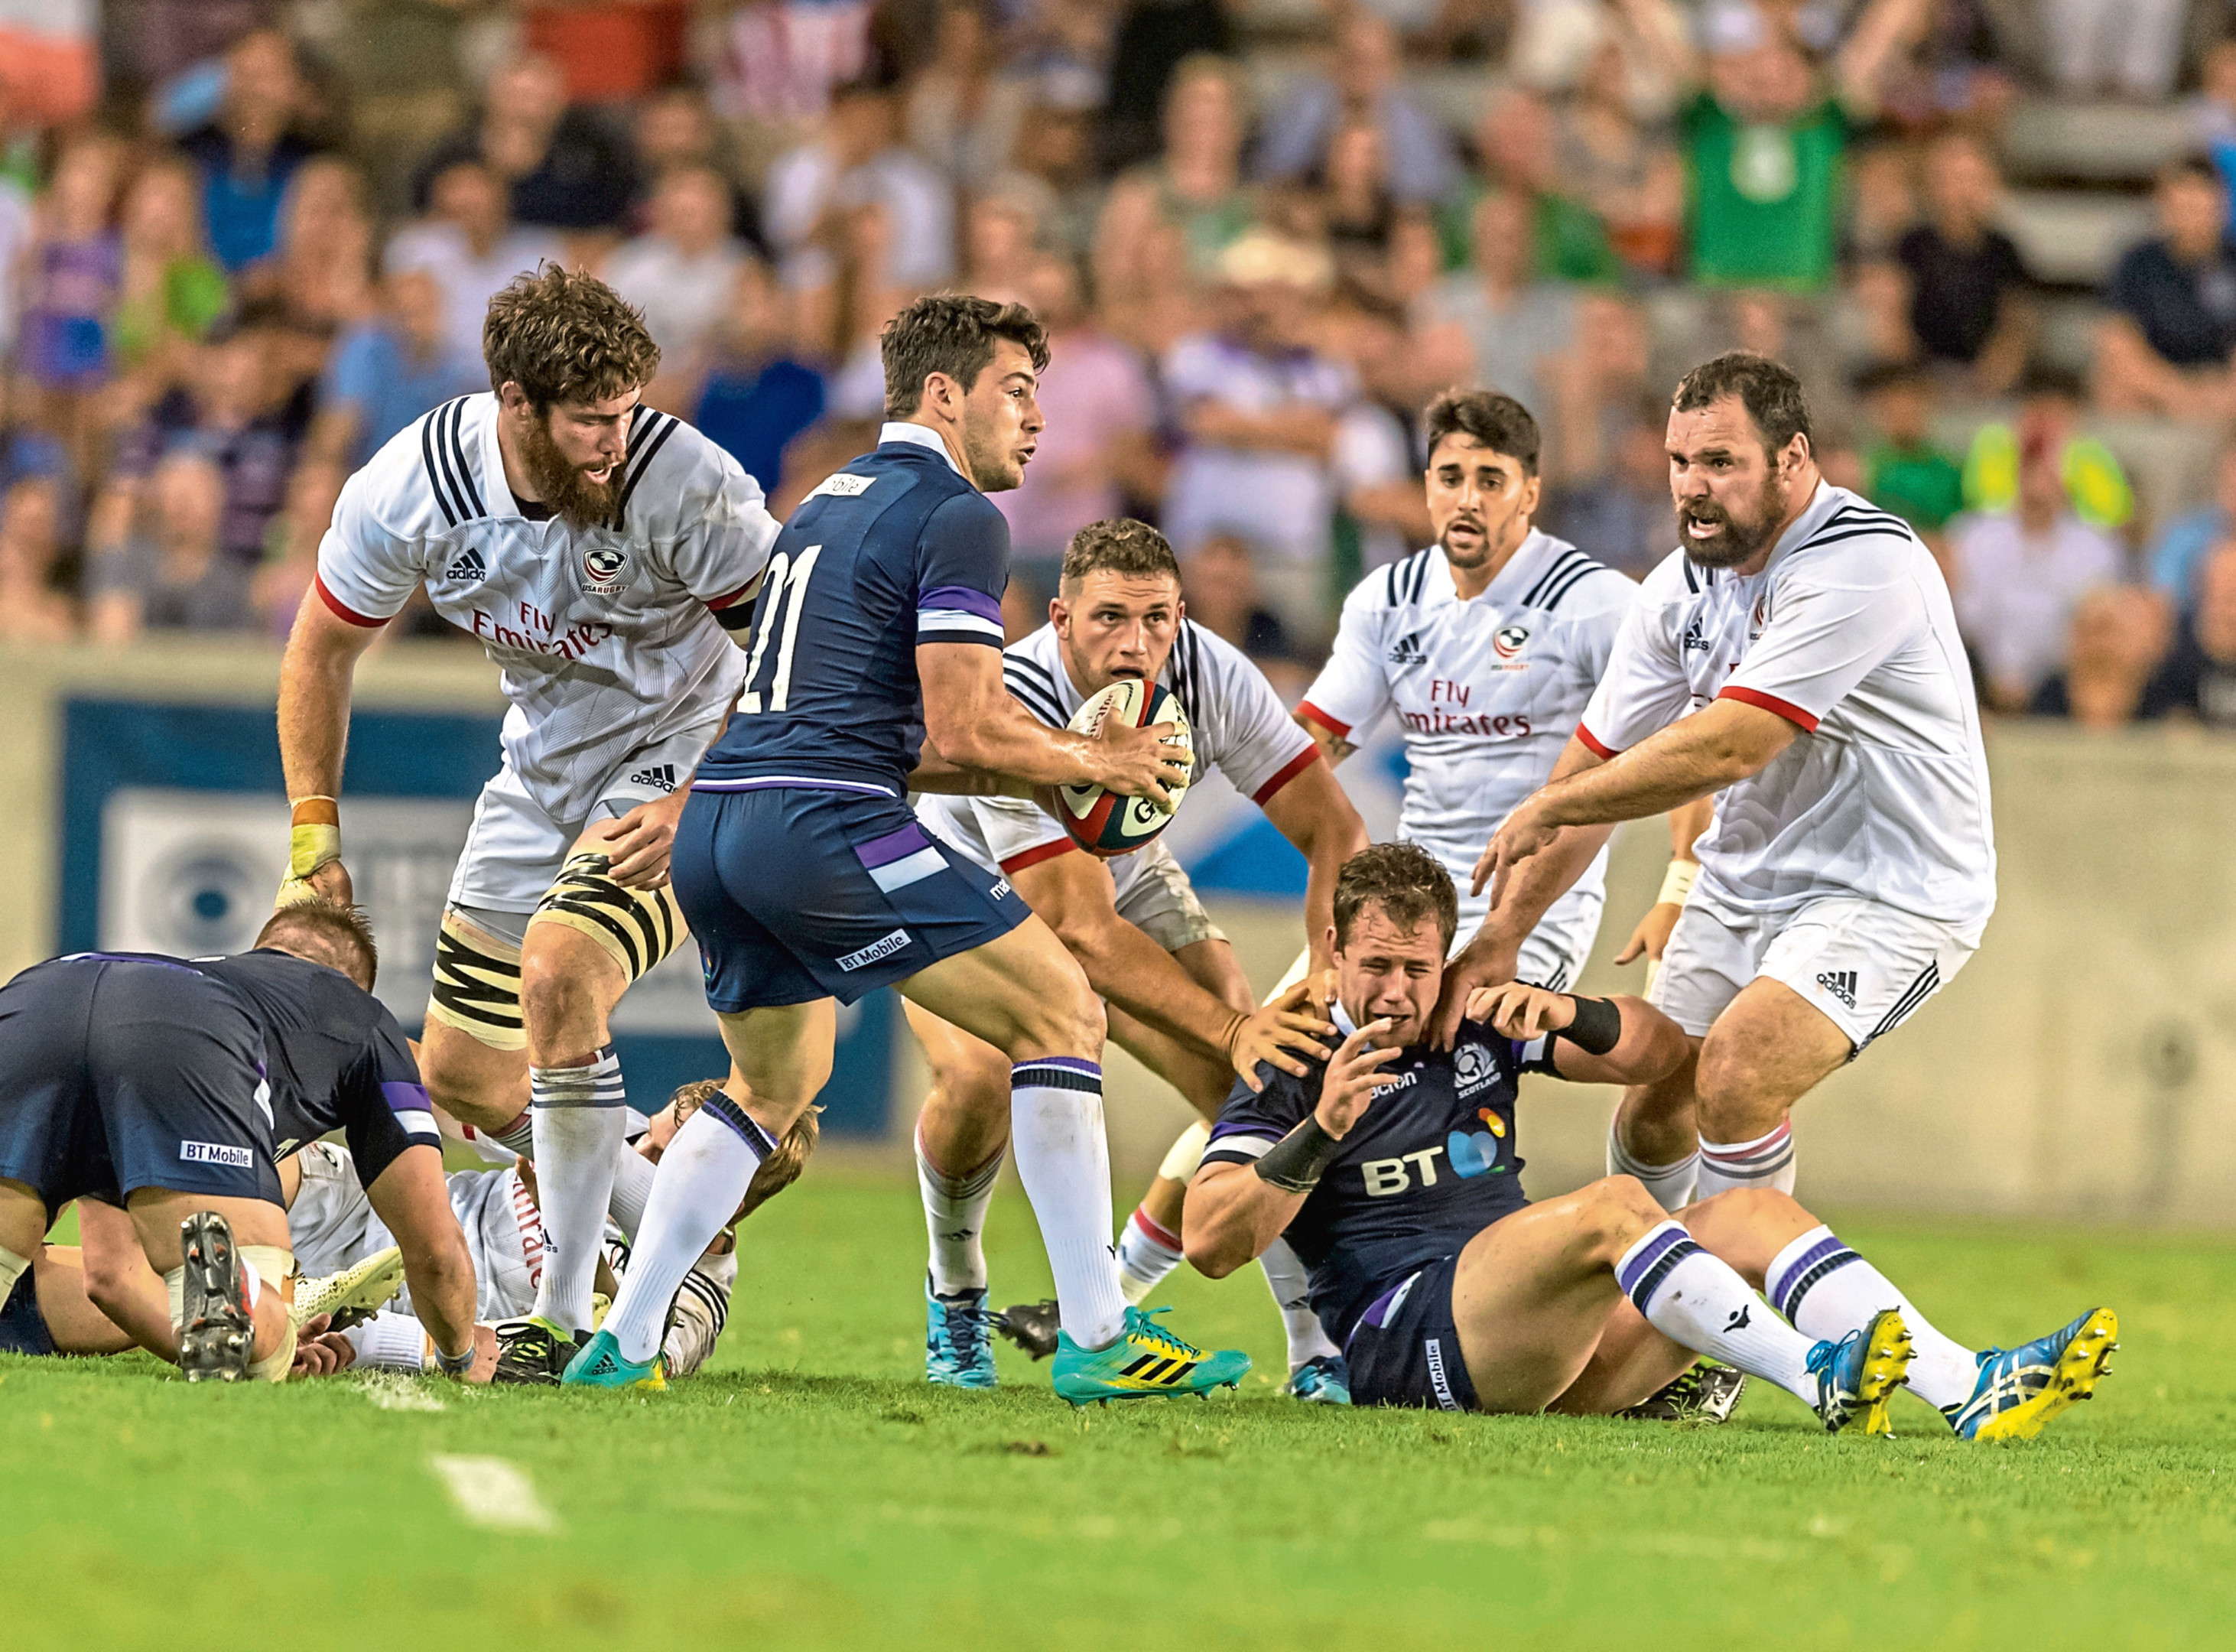 Rugby June 16, 2018 - Houston, Texas, US - Scotland Men's Rugby Team Sam Hidalgo-Clyne (21) looks to pitch the ball during the Emirates Summer Series 2018 match between USA Men's Team vs Scotland Men's Team at BBVA Compass Stadium, Houston, Texas (Credit Image: ? Maria Lysaker via ZUMA Wire)